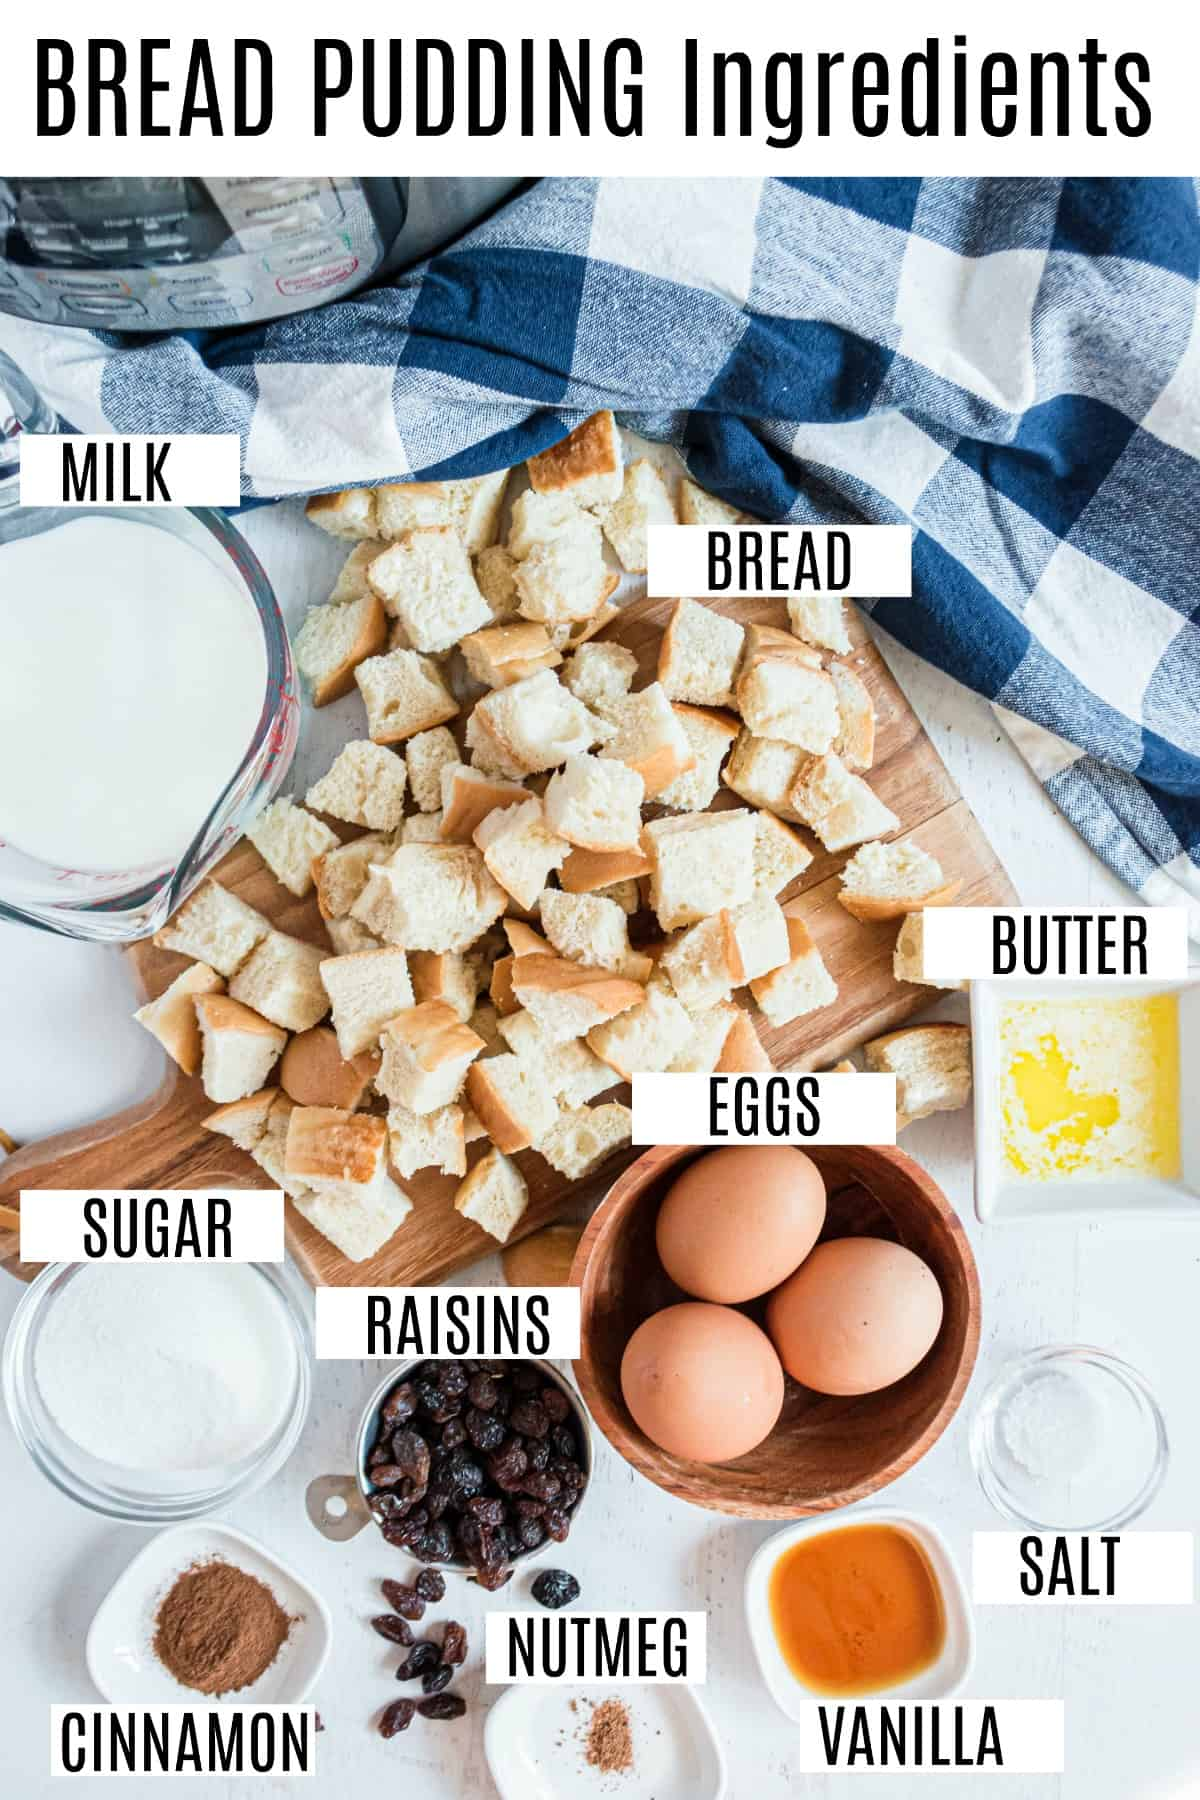 Ingredients needed for bread pudding including day old bread and eggs.